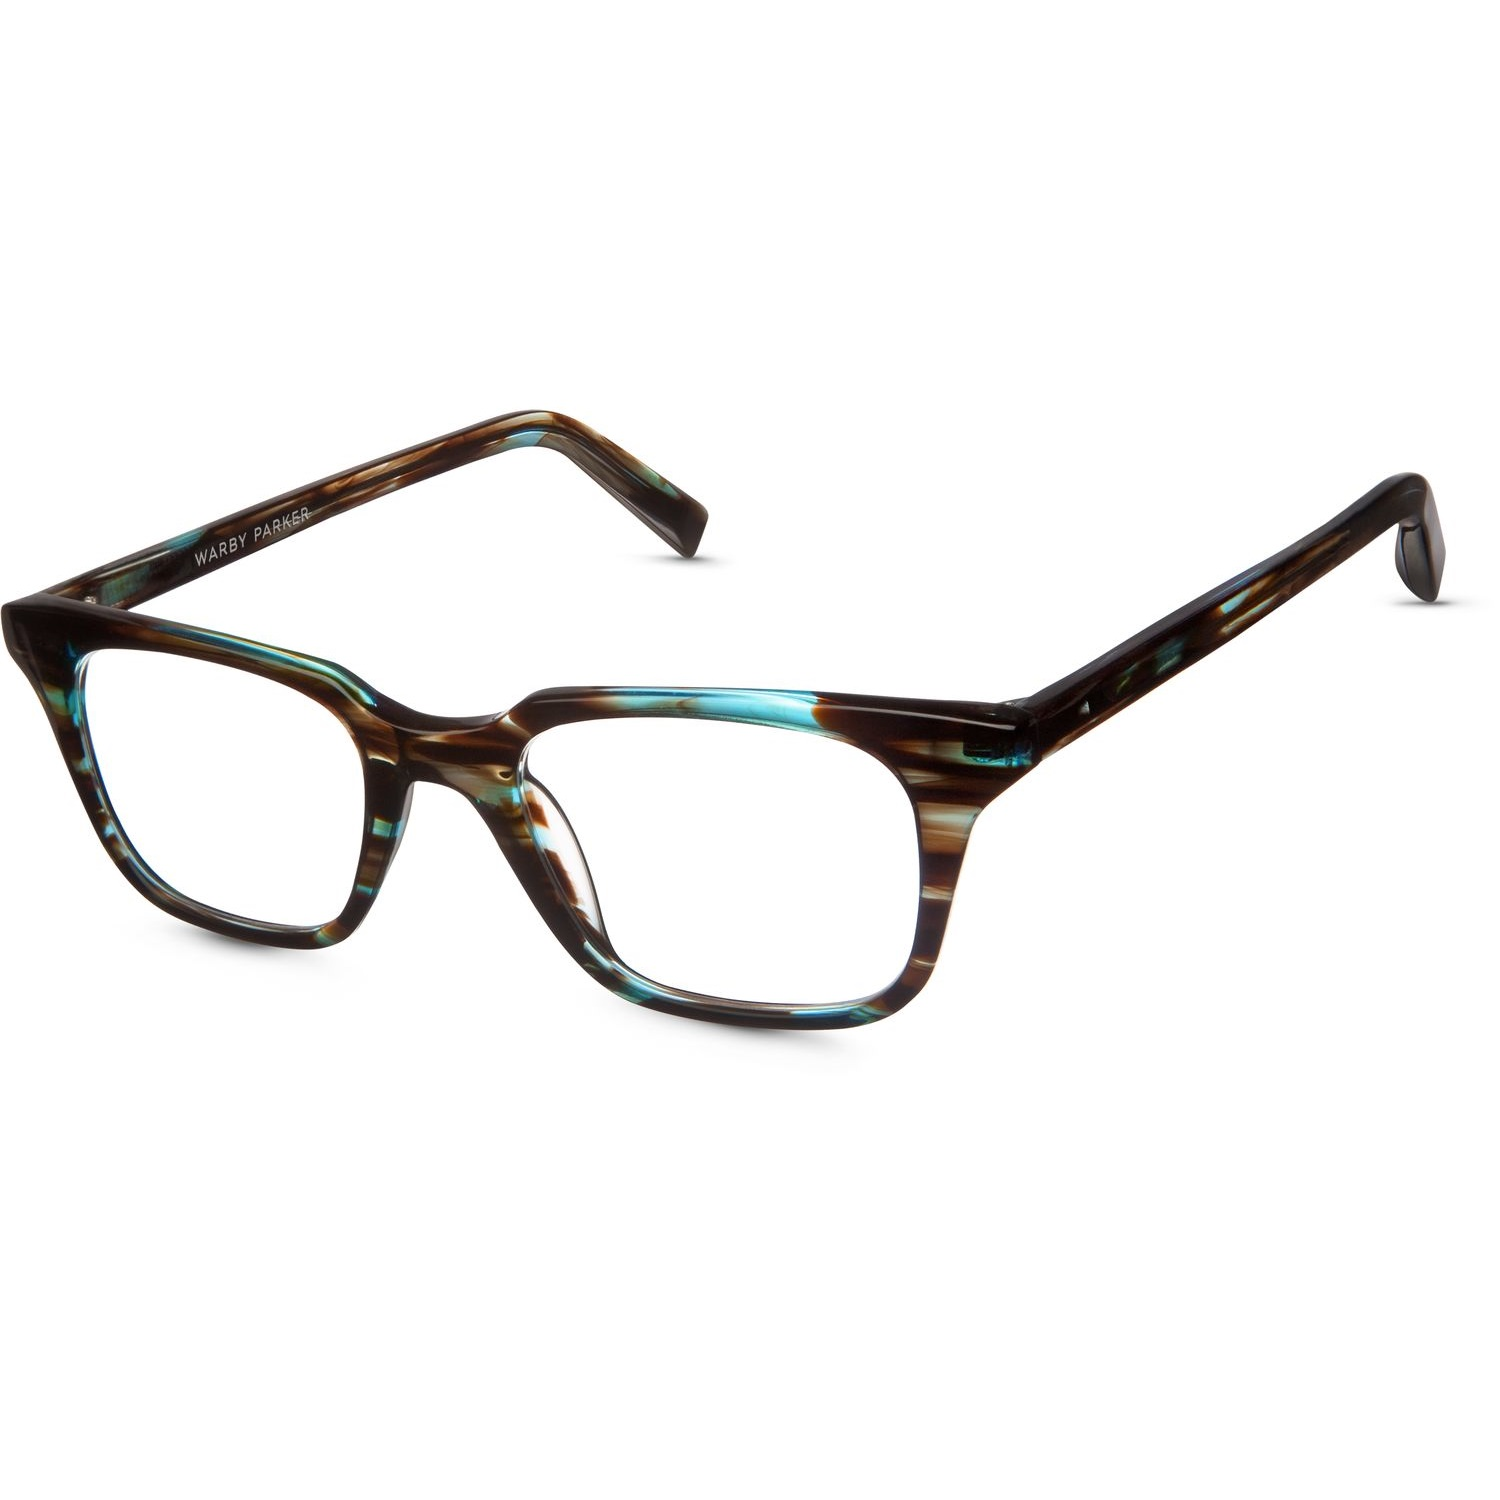 f5e0738e6840 Clark Eyeglasses for Men and Women — Eyewear Blogger